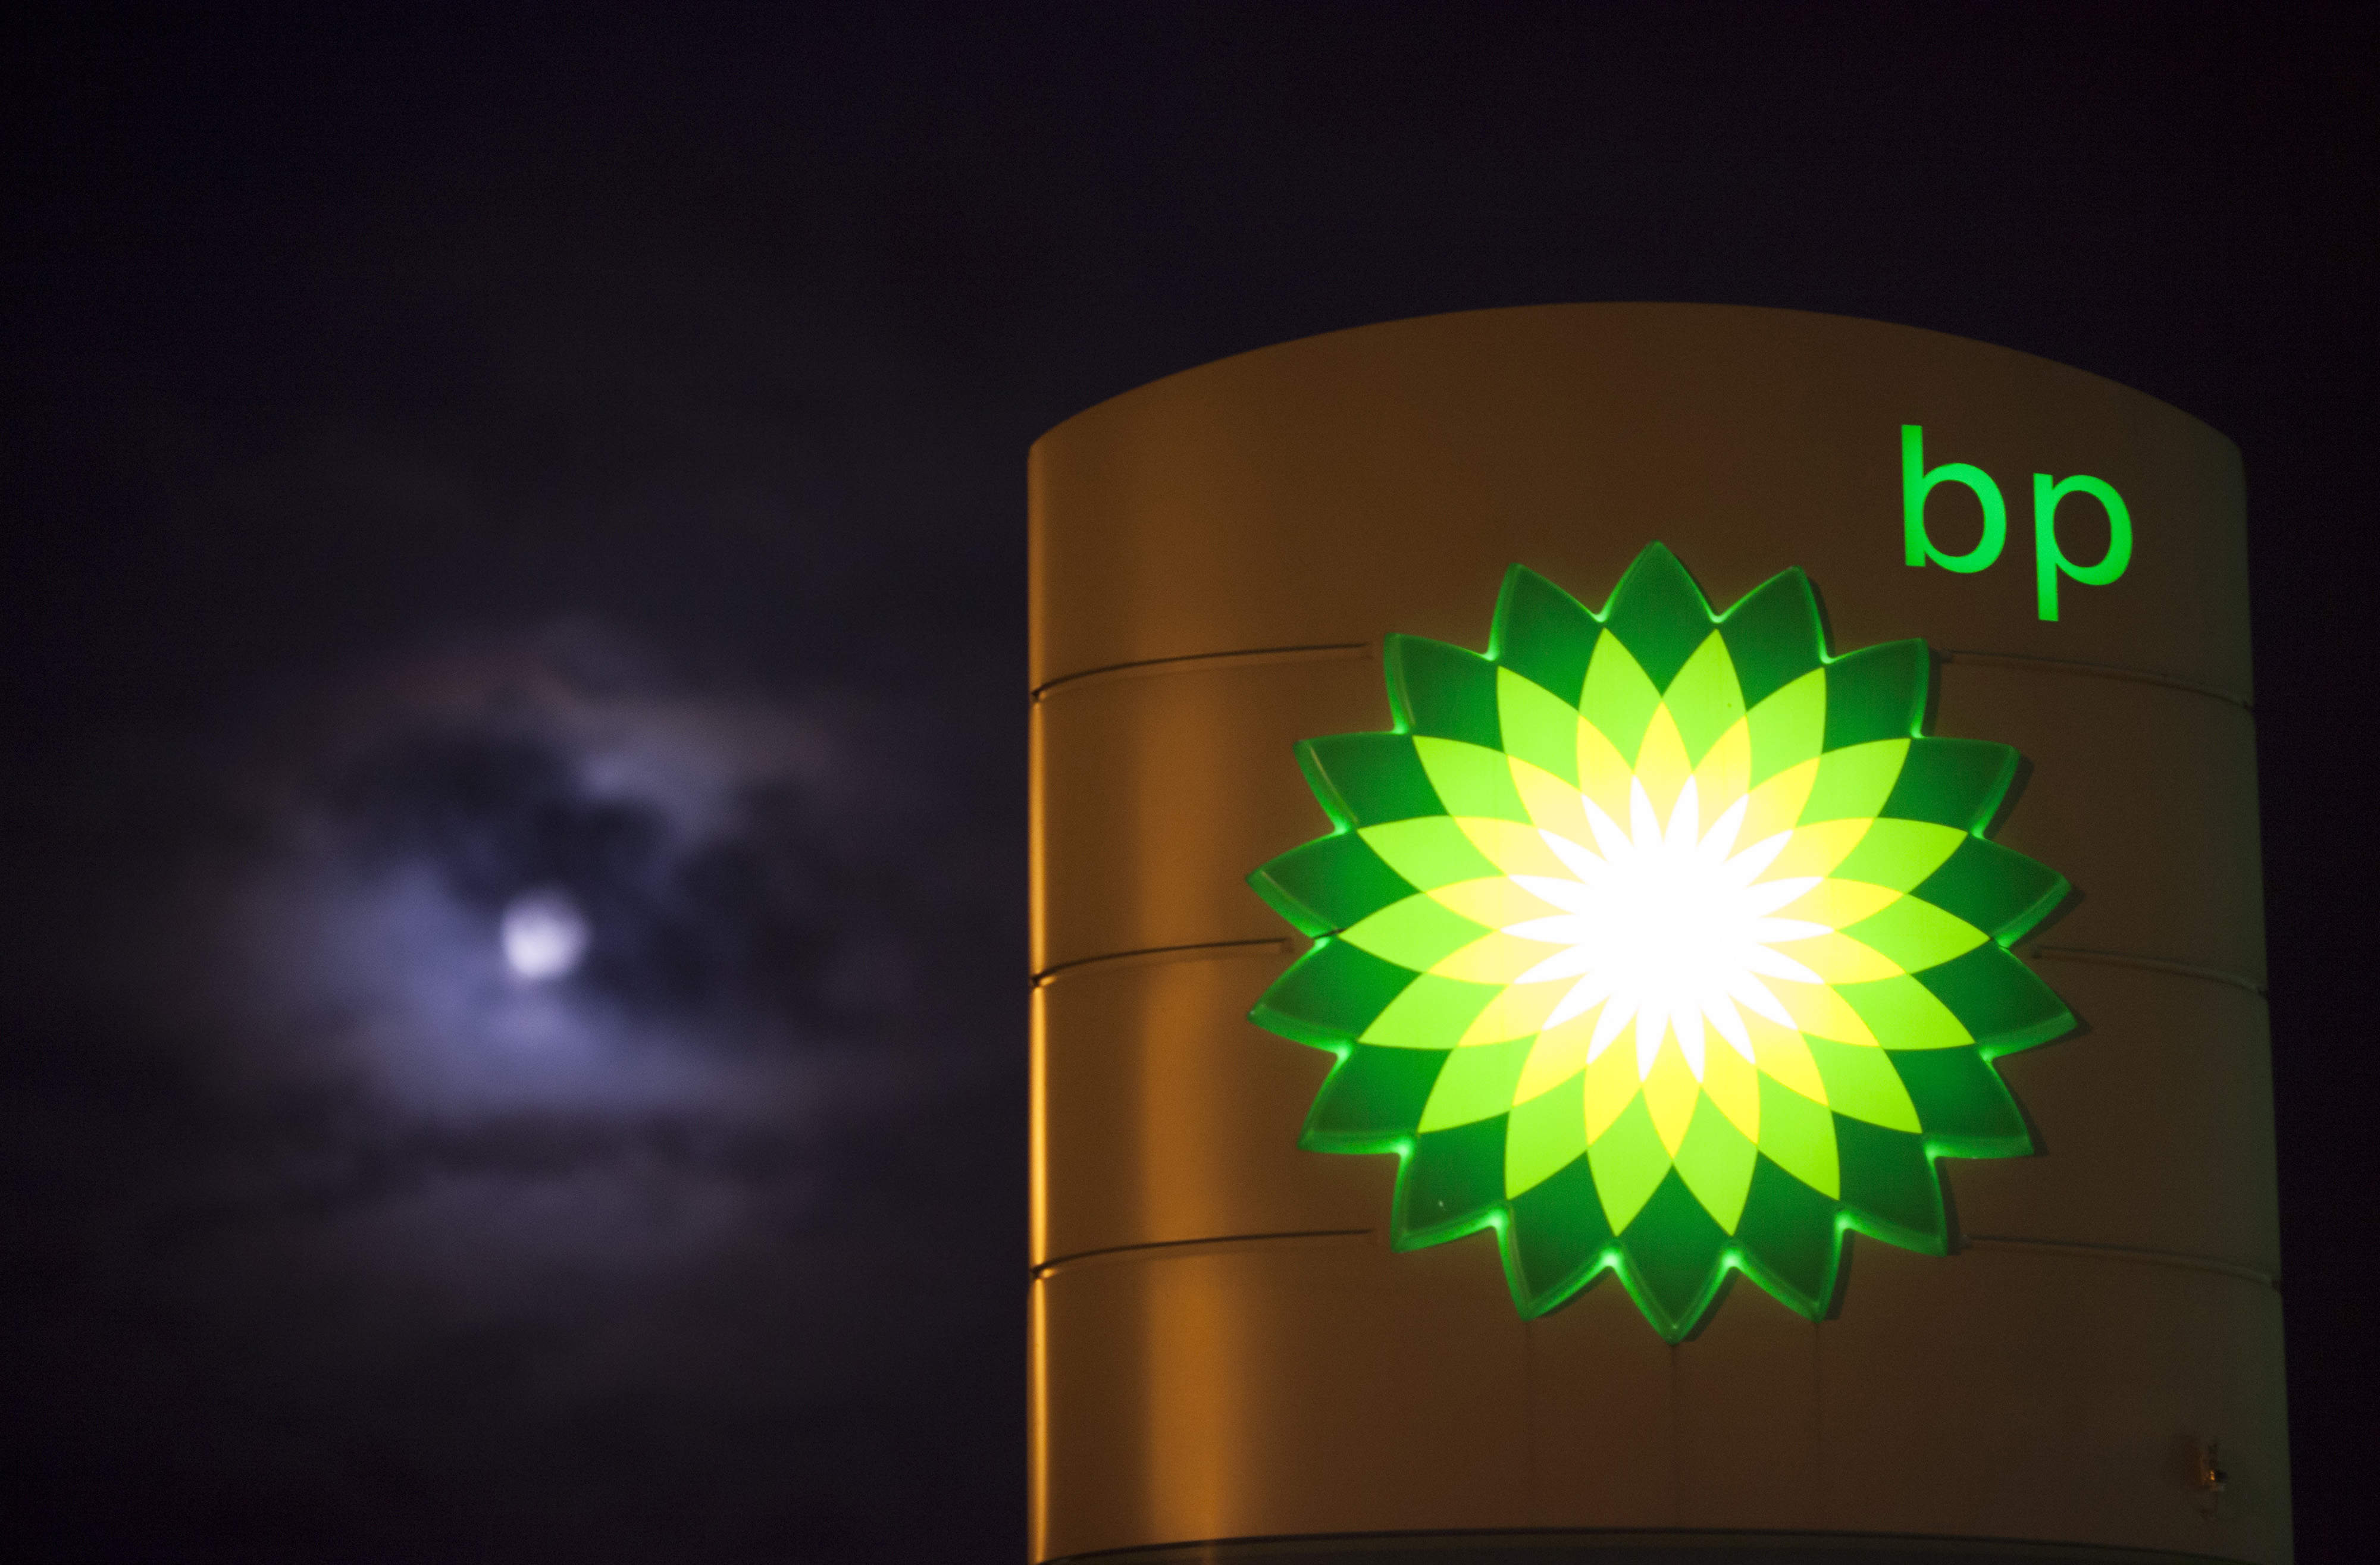 Bp Share Price Climbs As Higher Oil Prices Push Profit Up